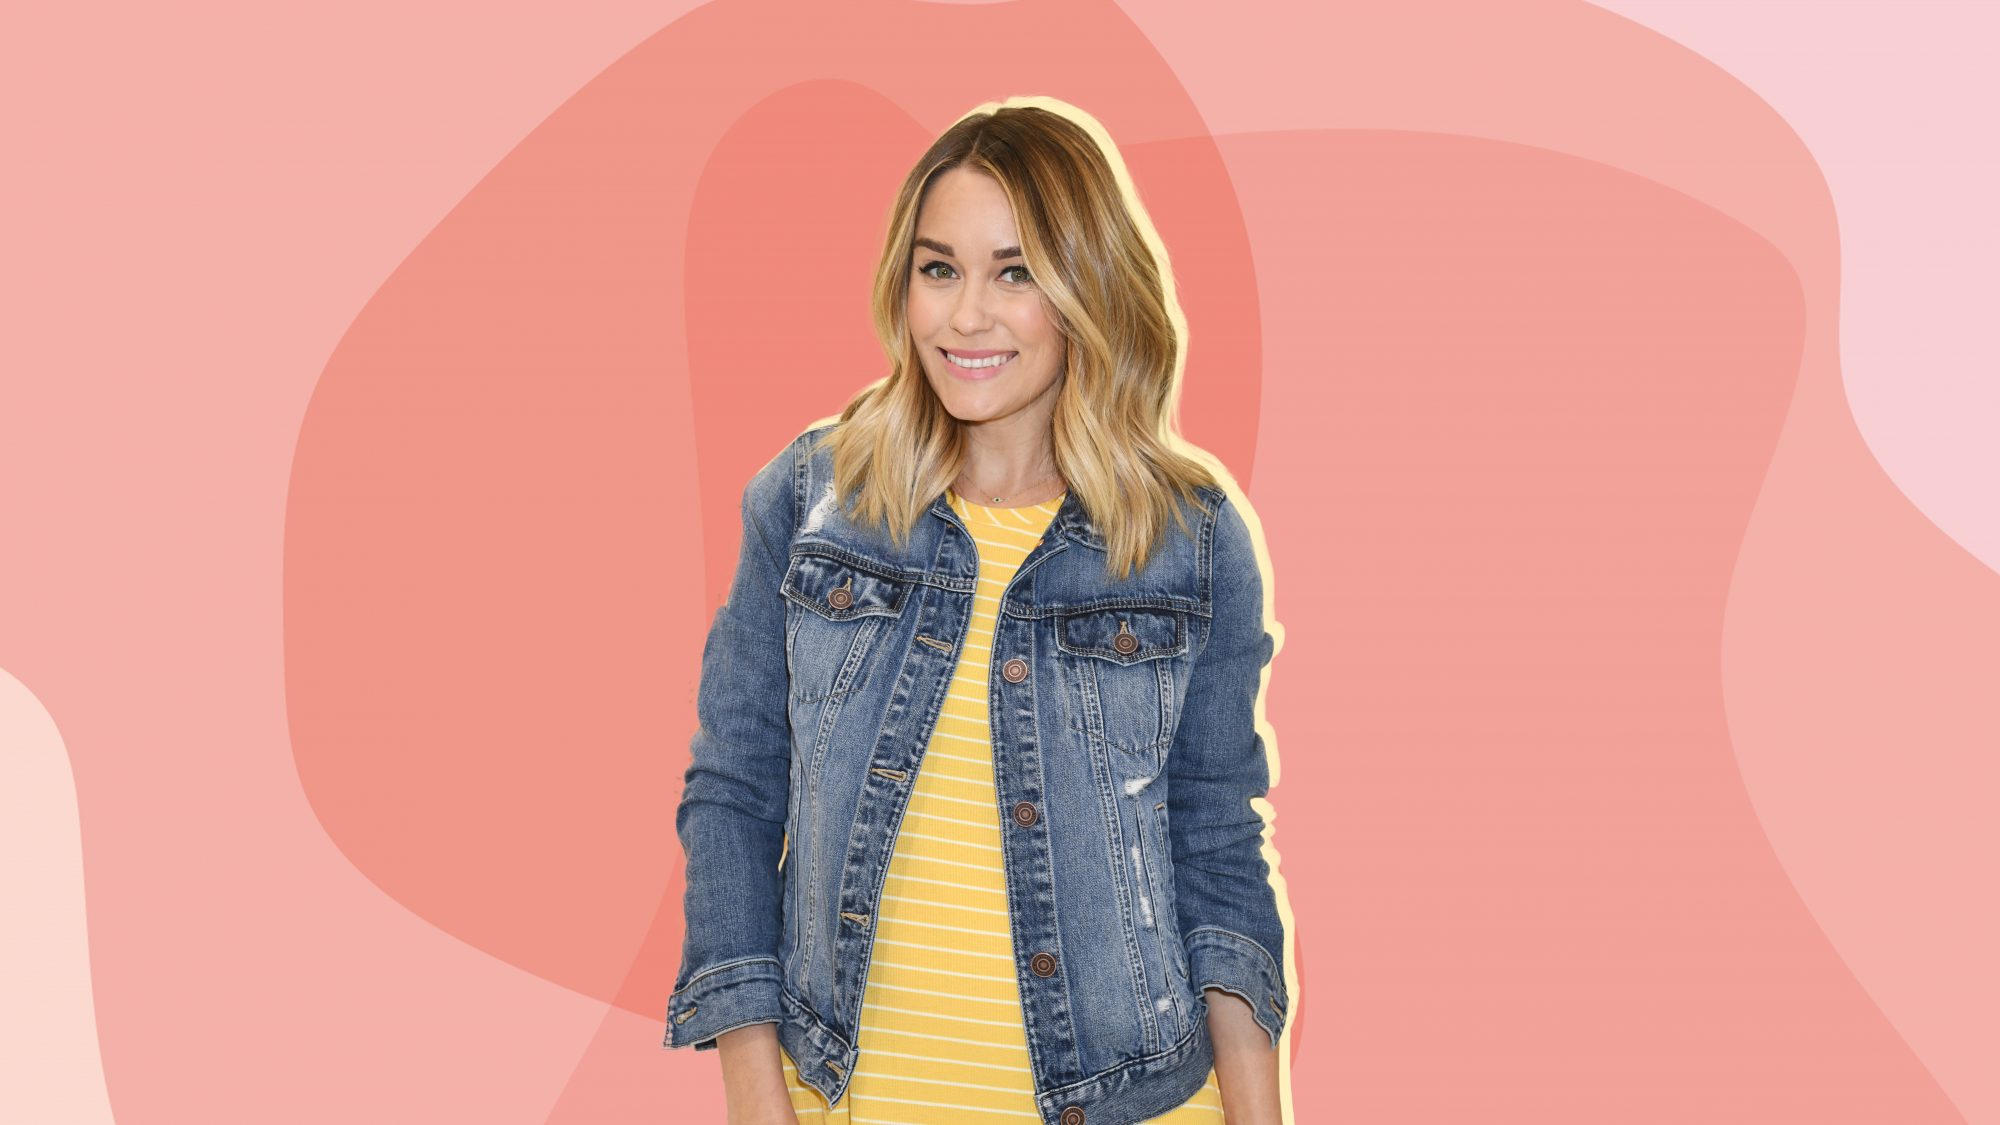 Lauren Conrad Shows Off Her Baby Bump and Admits to Having Mixed Feelings About Approaching Due Date